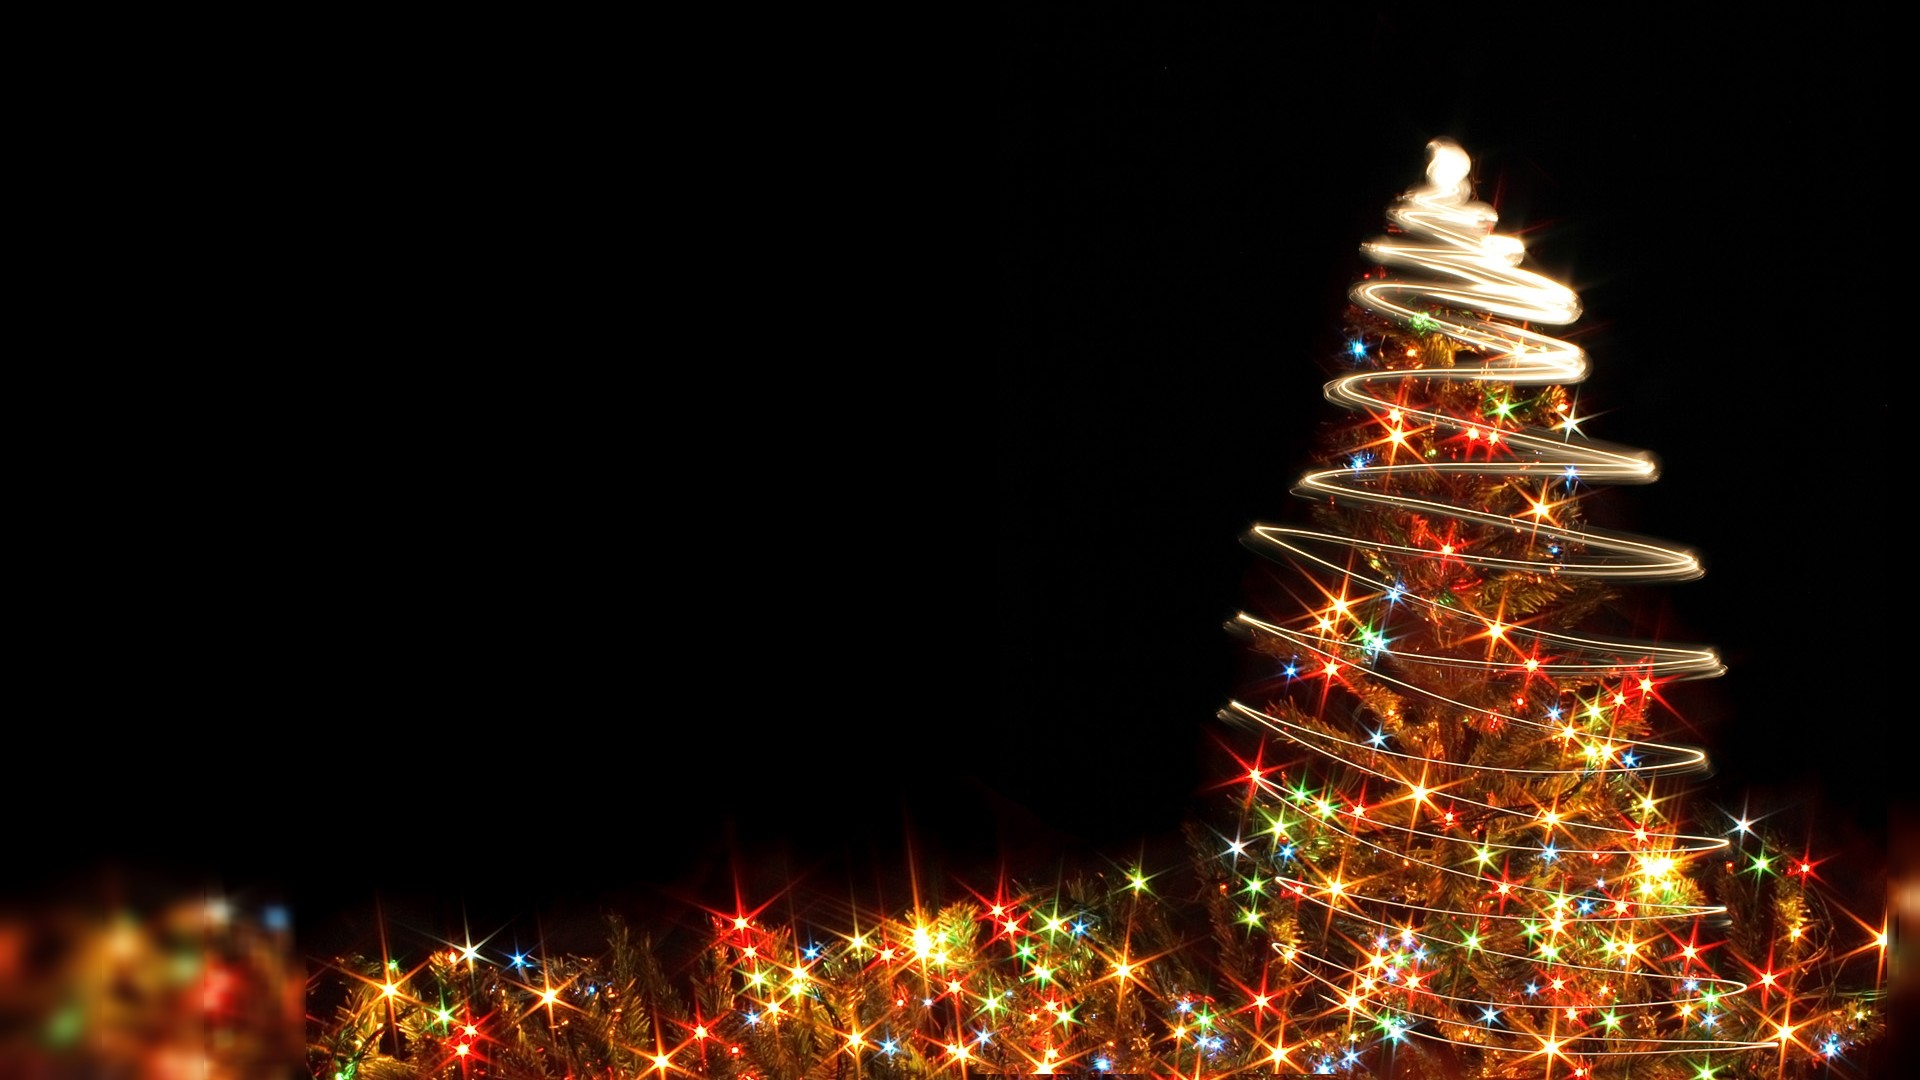 Ultra HD Christmas Wallpapers (39+ images)